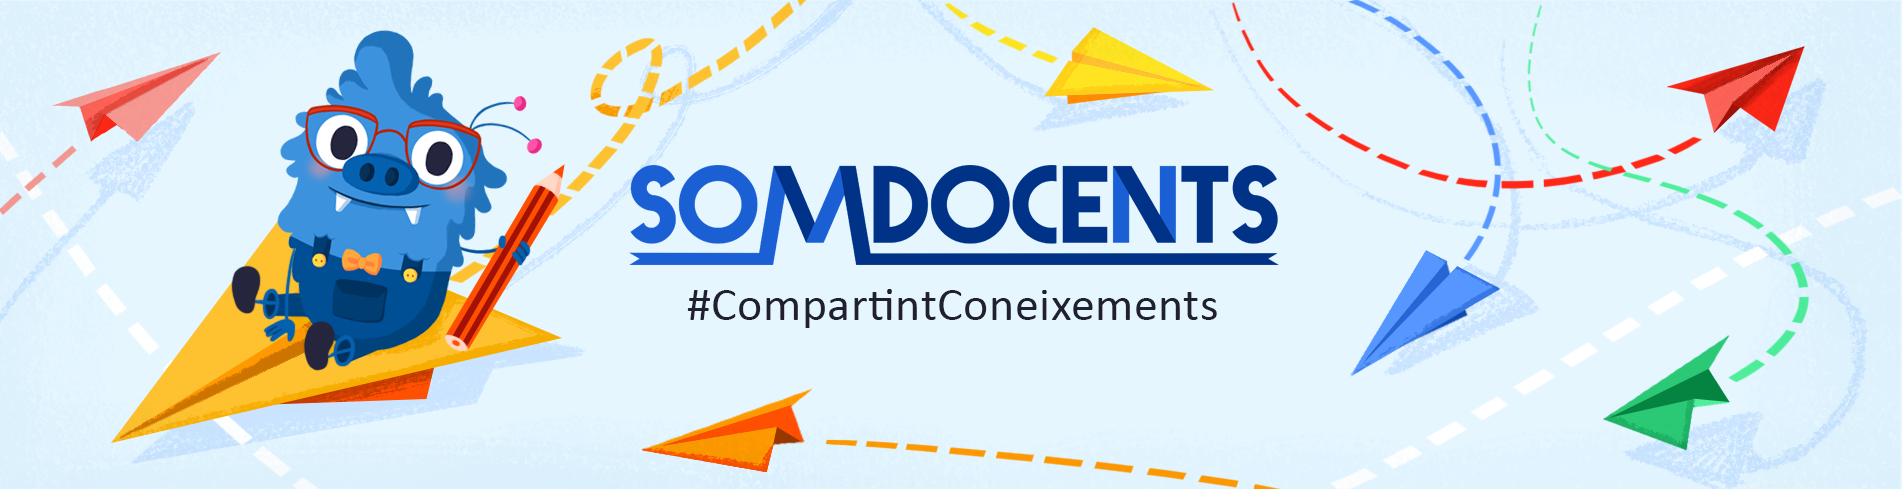 SomDocents - Compartim coneixements